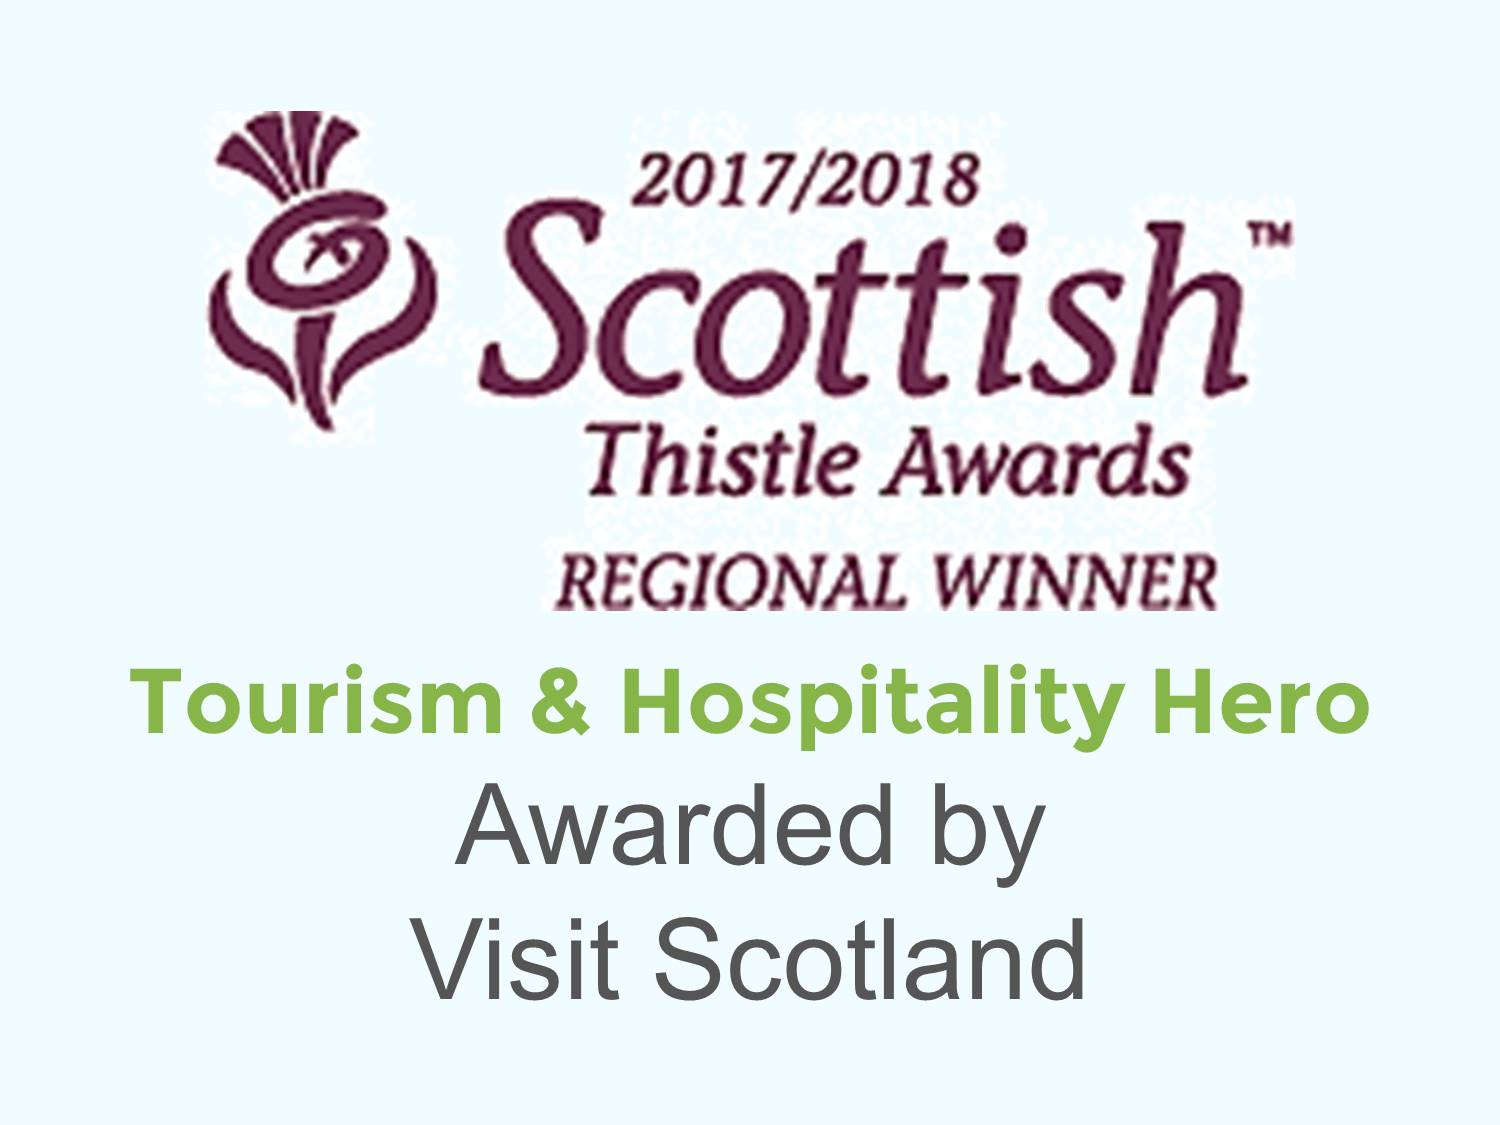 scottish thistle awards tourism and hospitality hero winner 2017 18.jpg